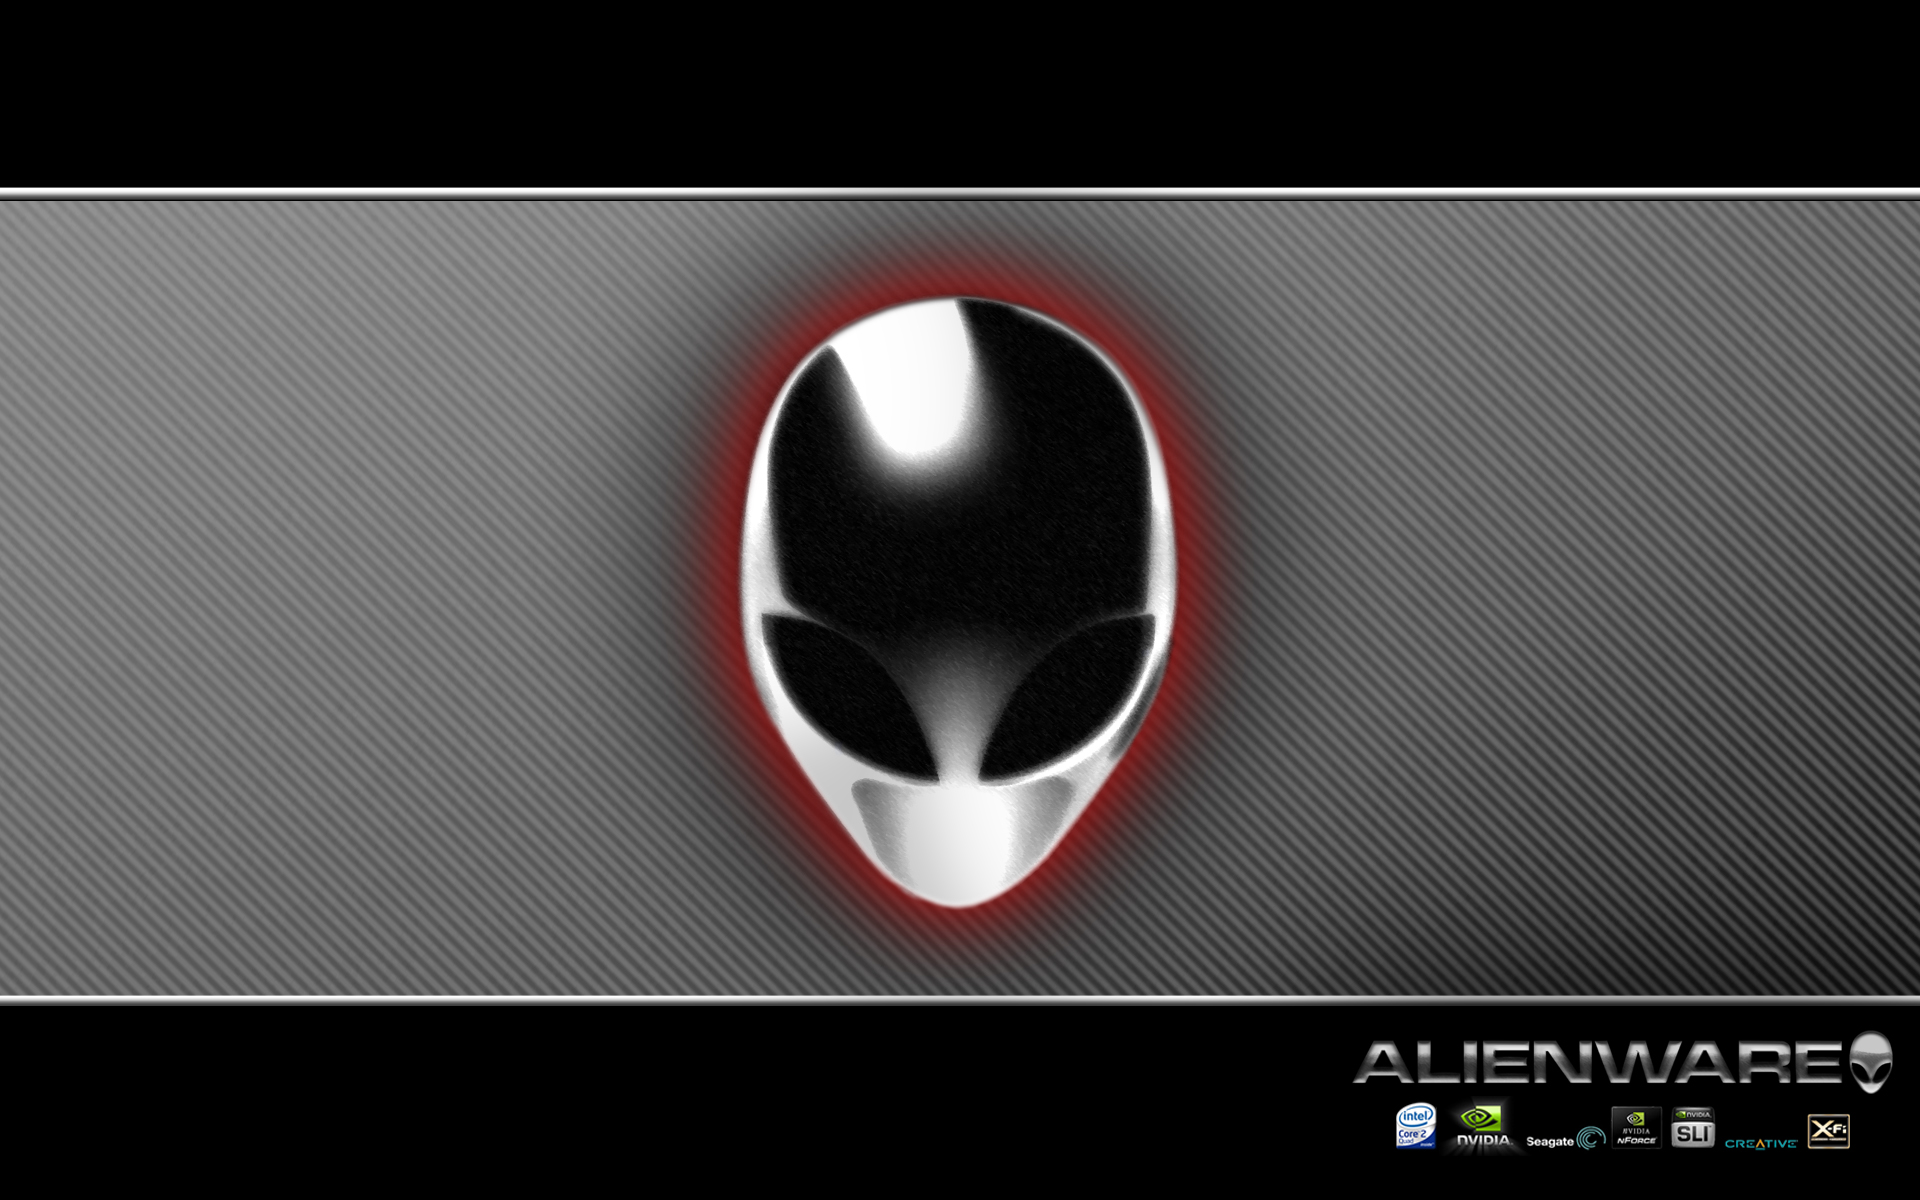 Technology - Alienware  Wallpaper